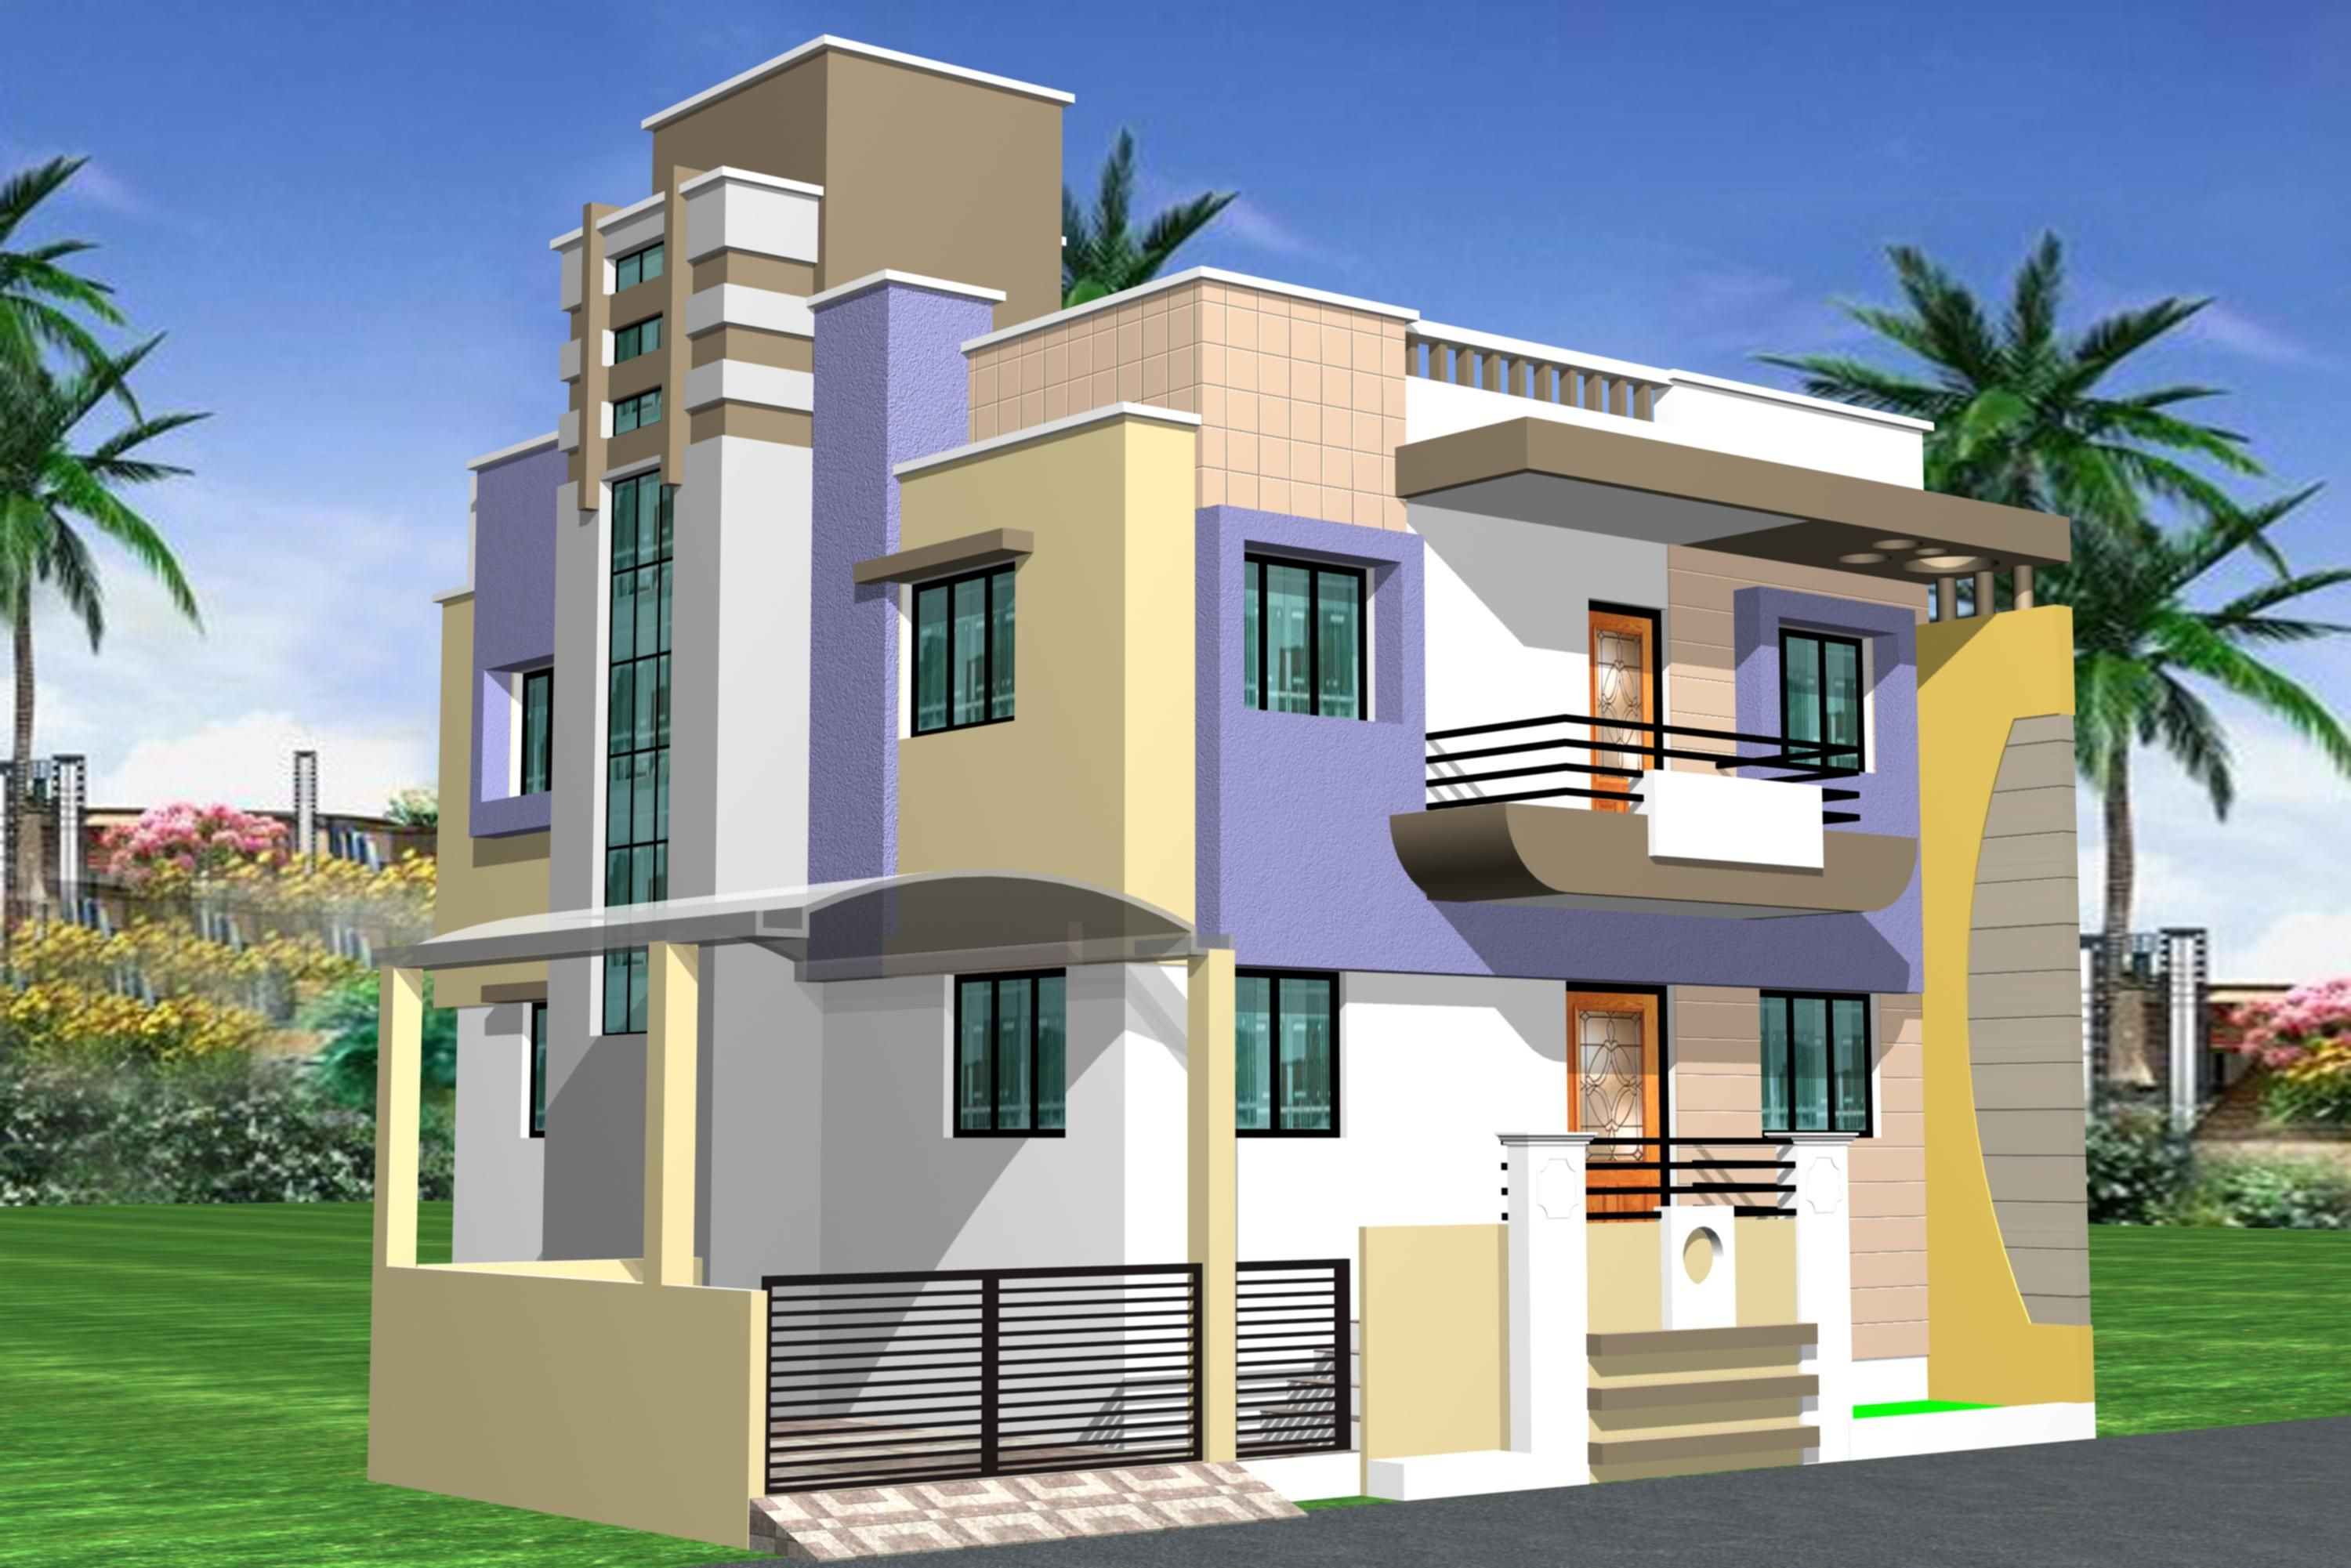 30x40 house front elevation designs google search for Home models in tamilnadu pictures